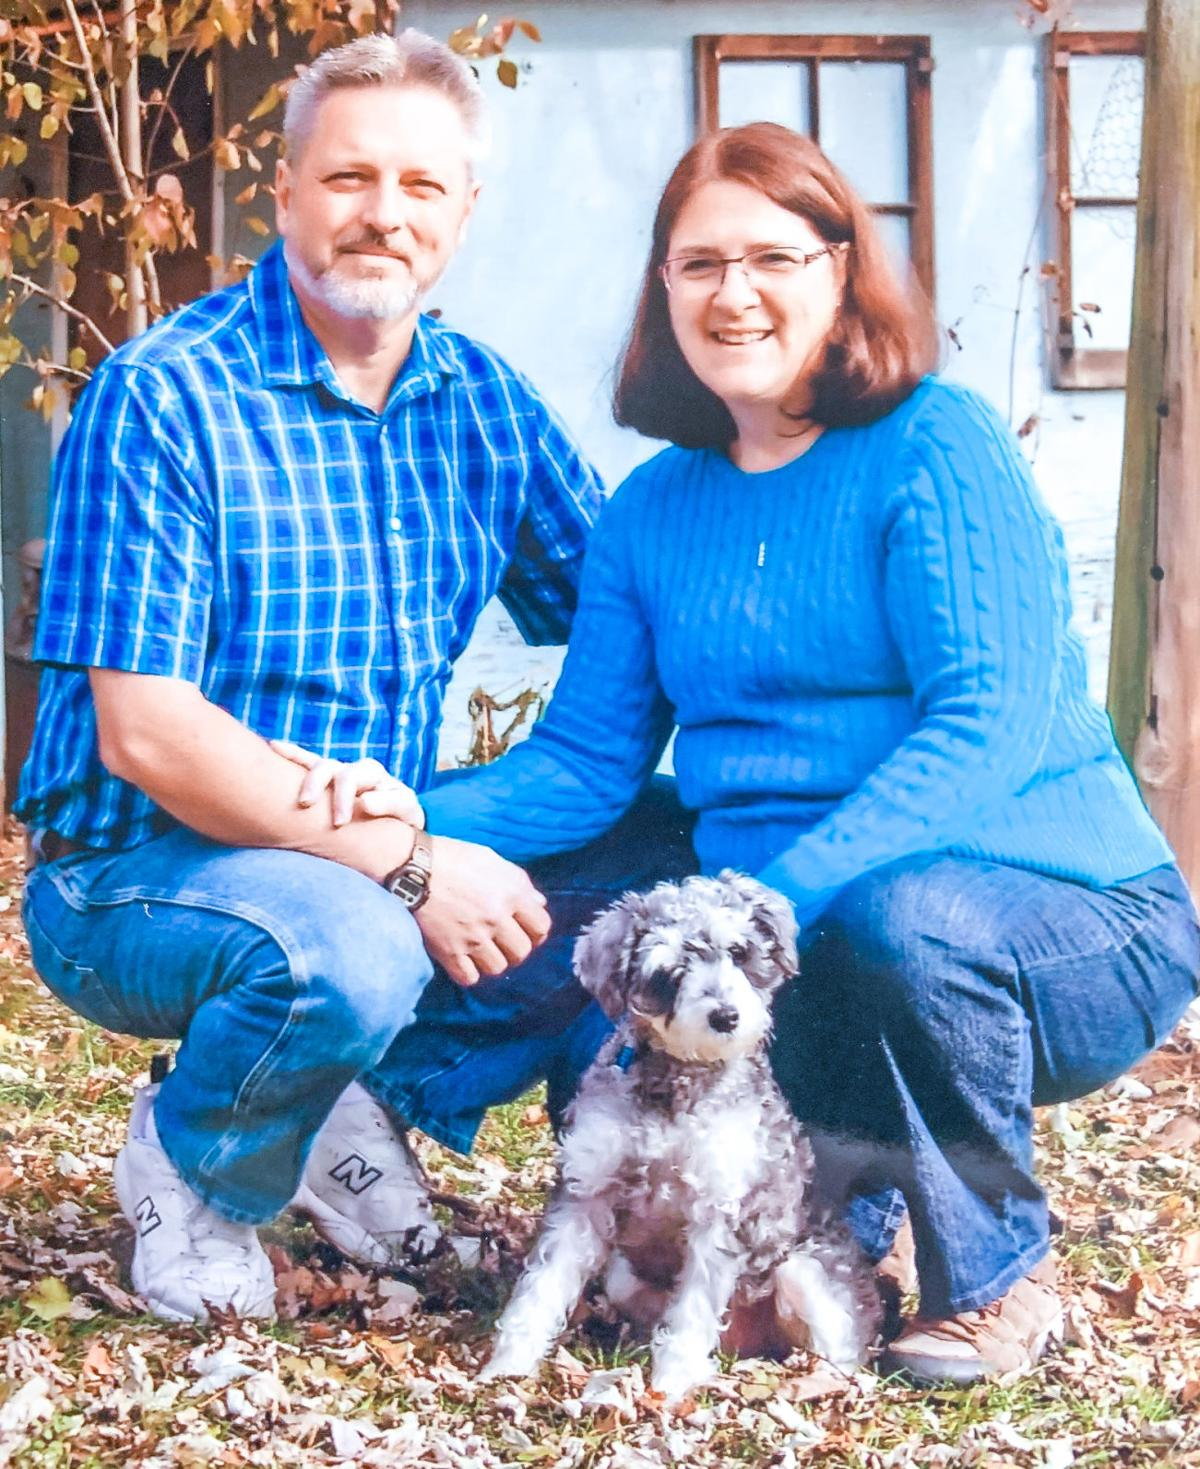 Allan and Melanie Meck with their dog Bentley.